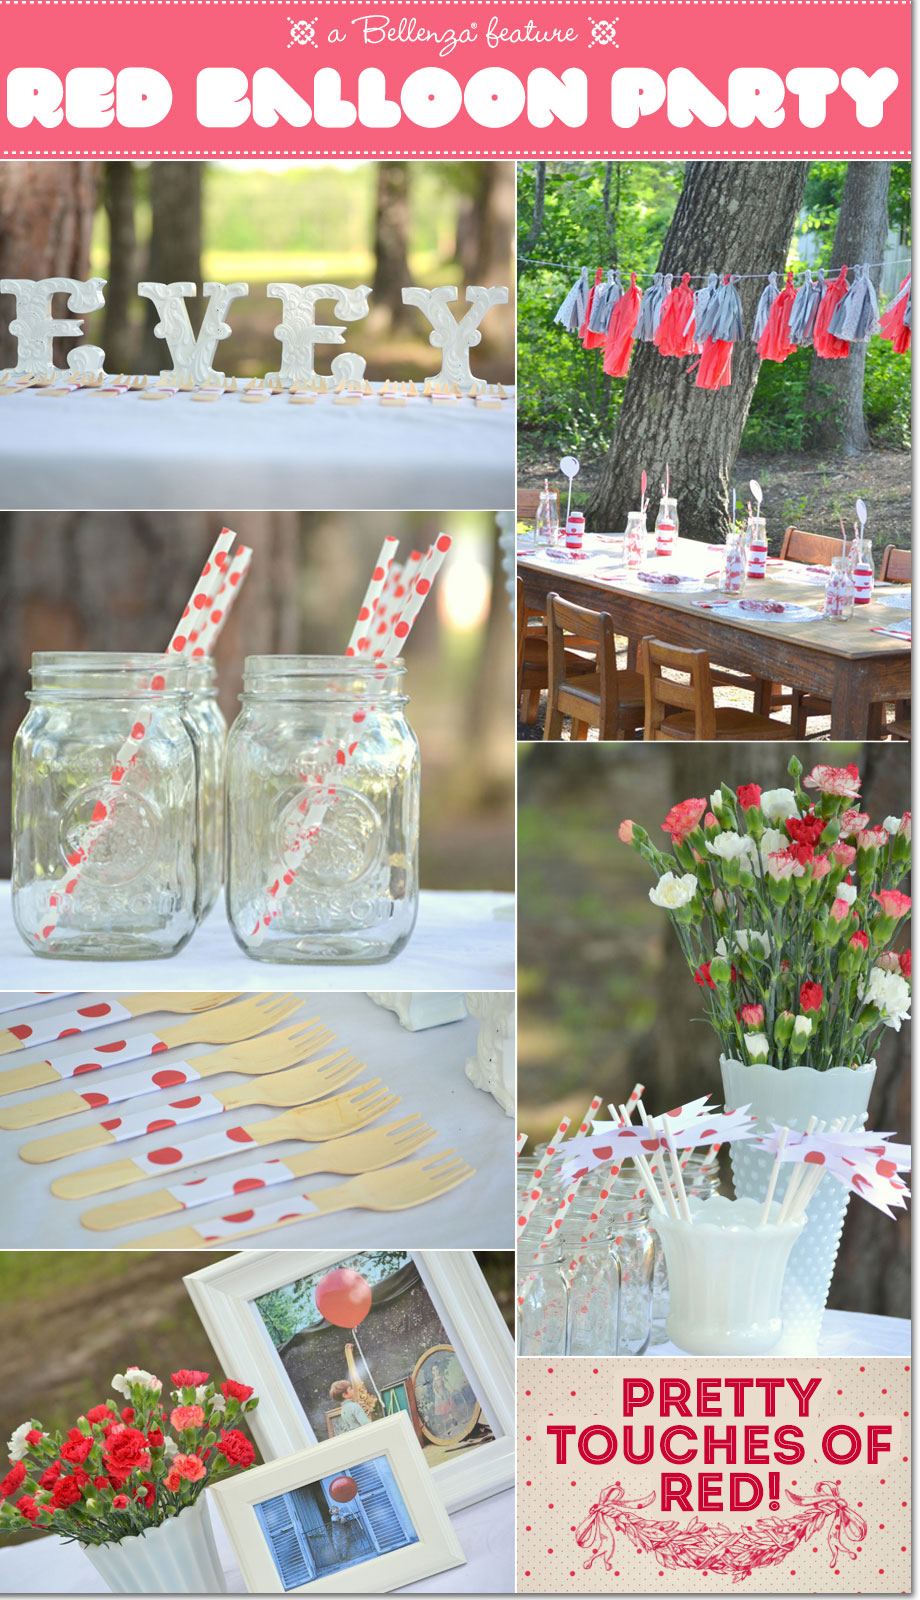 Red balloon party theme table decorations from bright red carnations to fringe tassel garlands